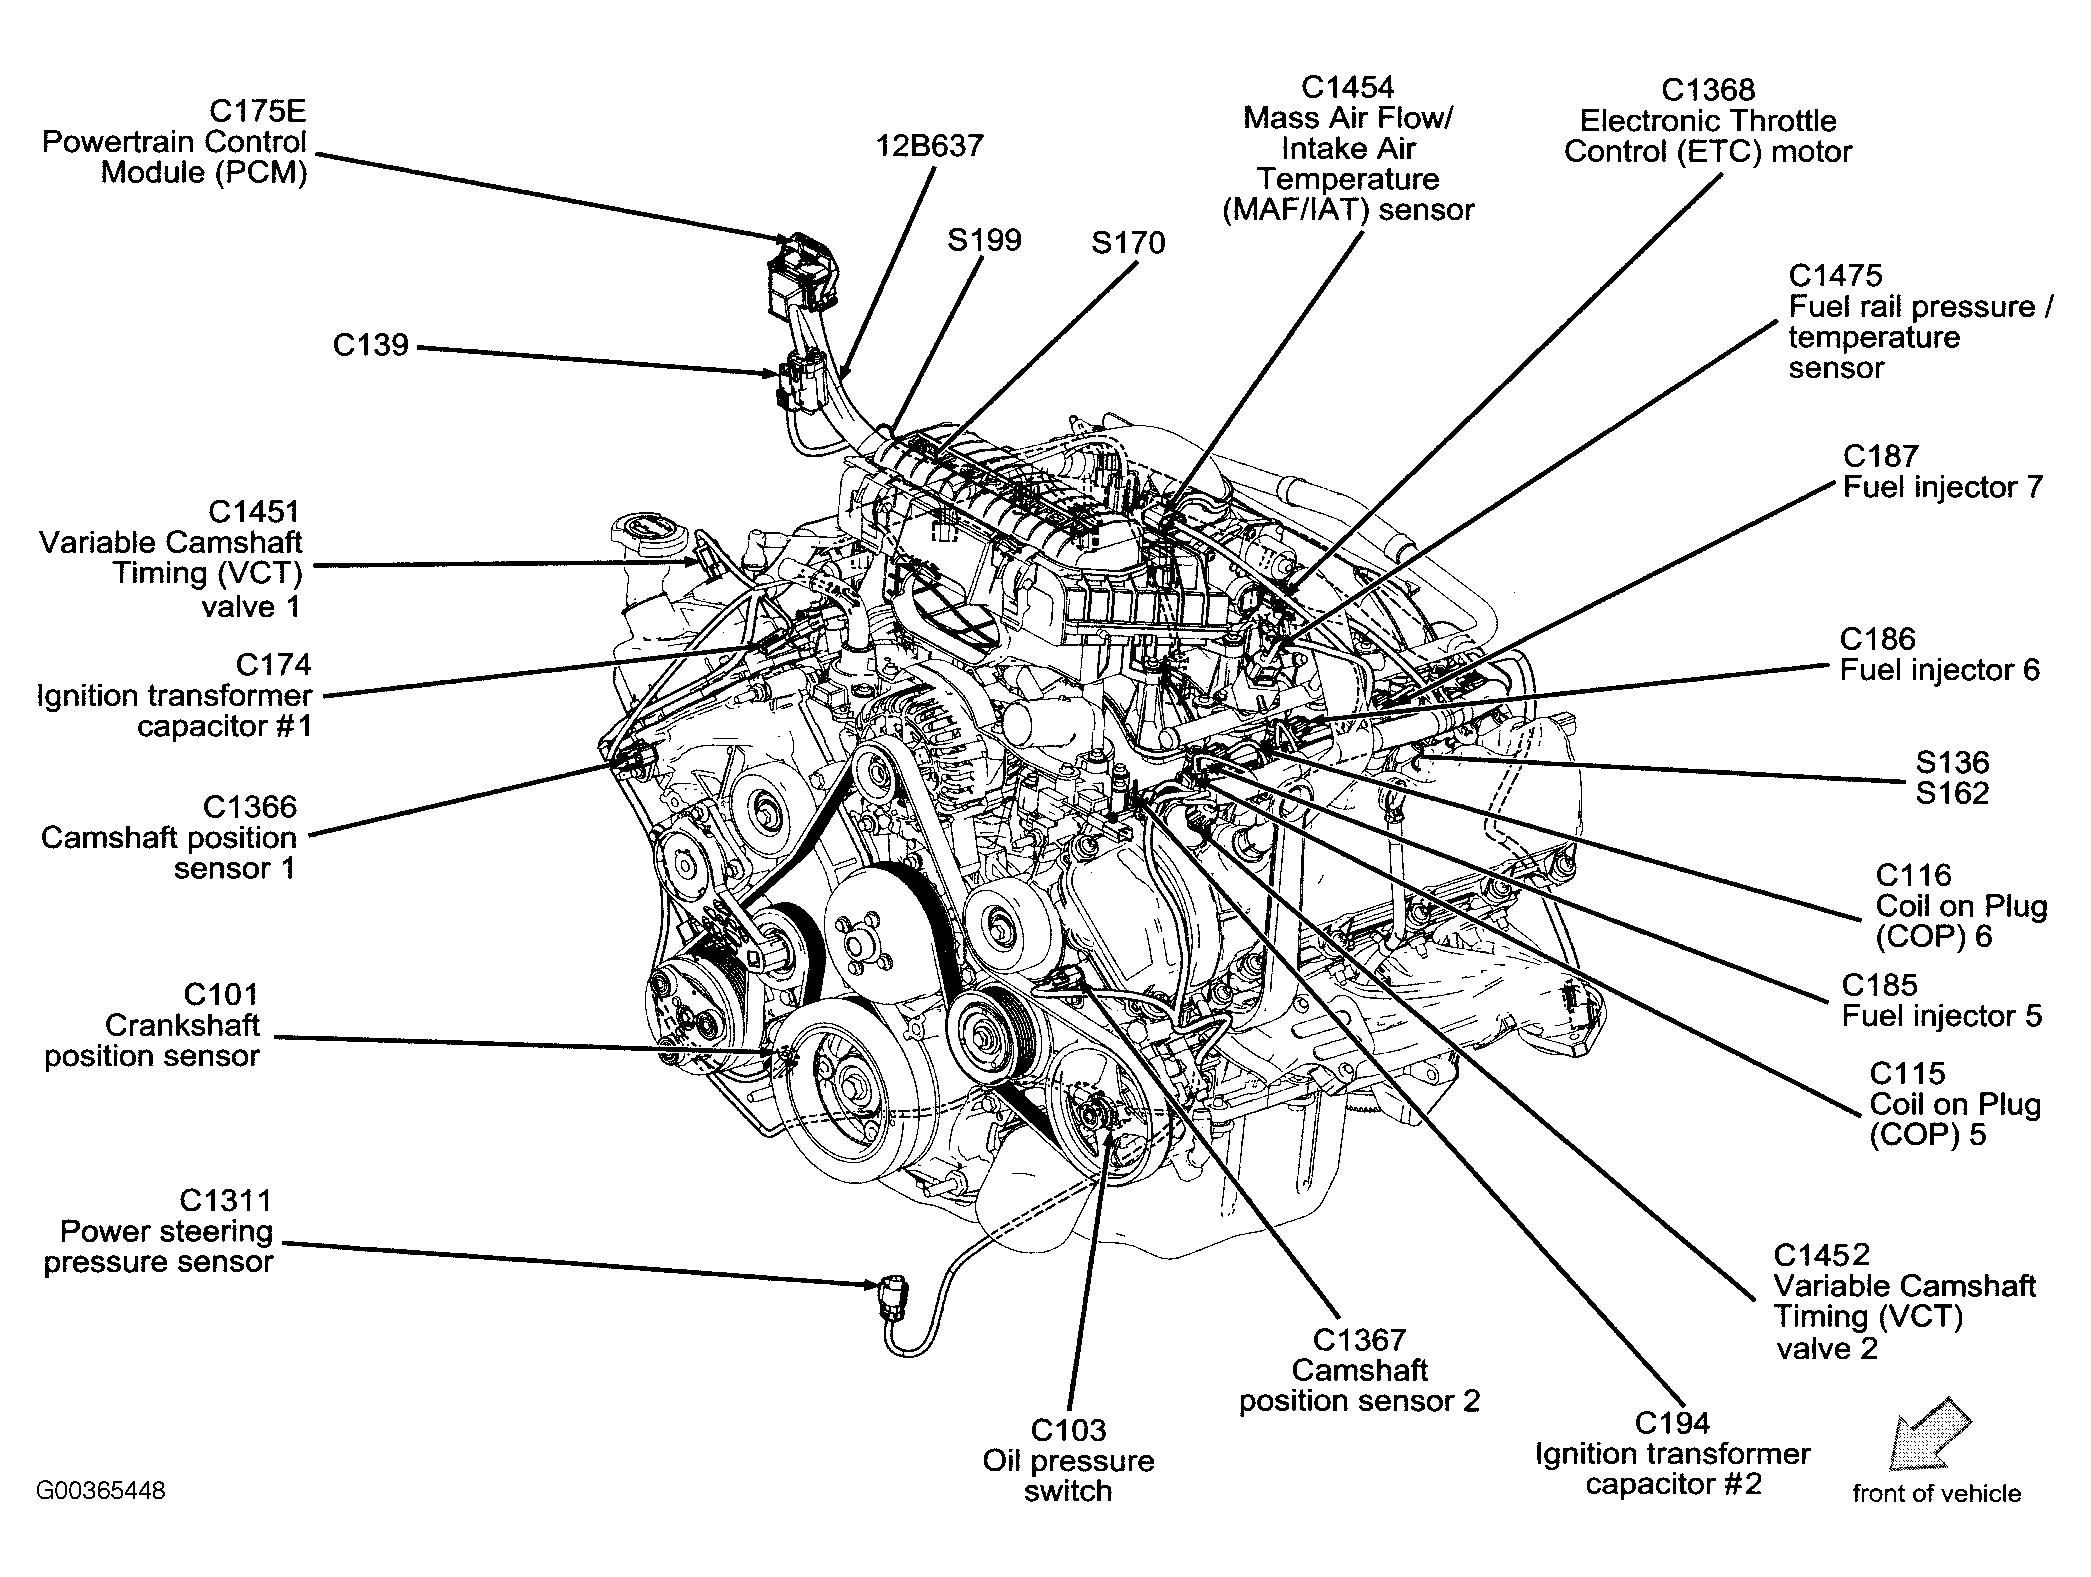 2007 Ford Mustang Engine Diagram | Wiring Diagram  Mustang Engine Diagram on